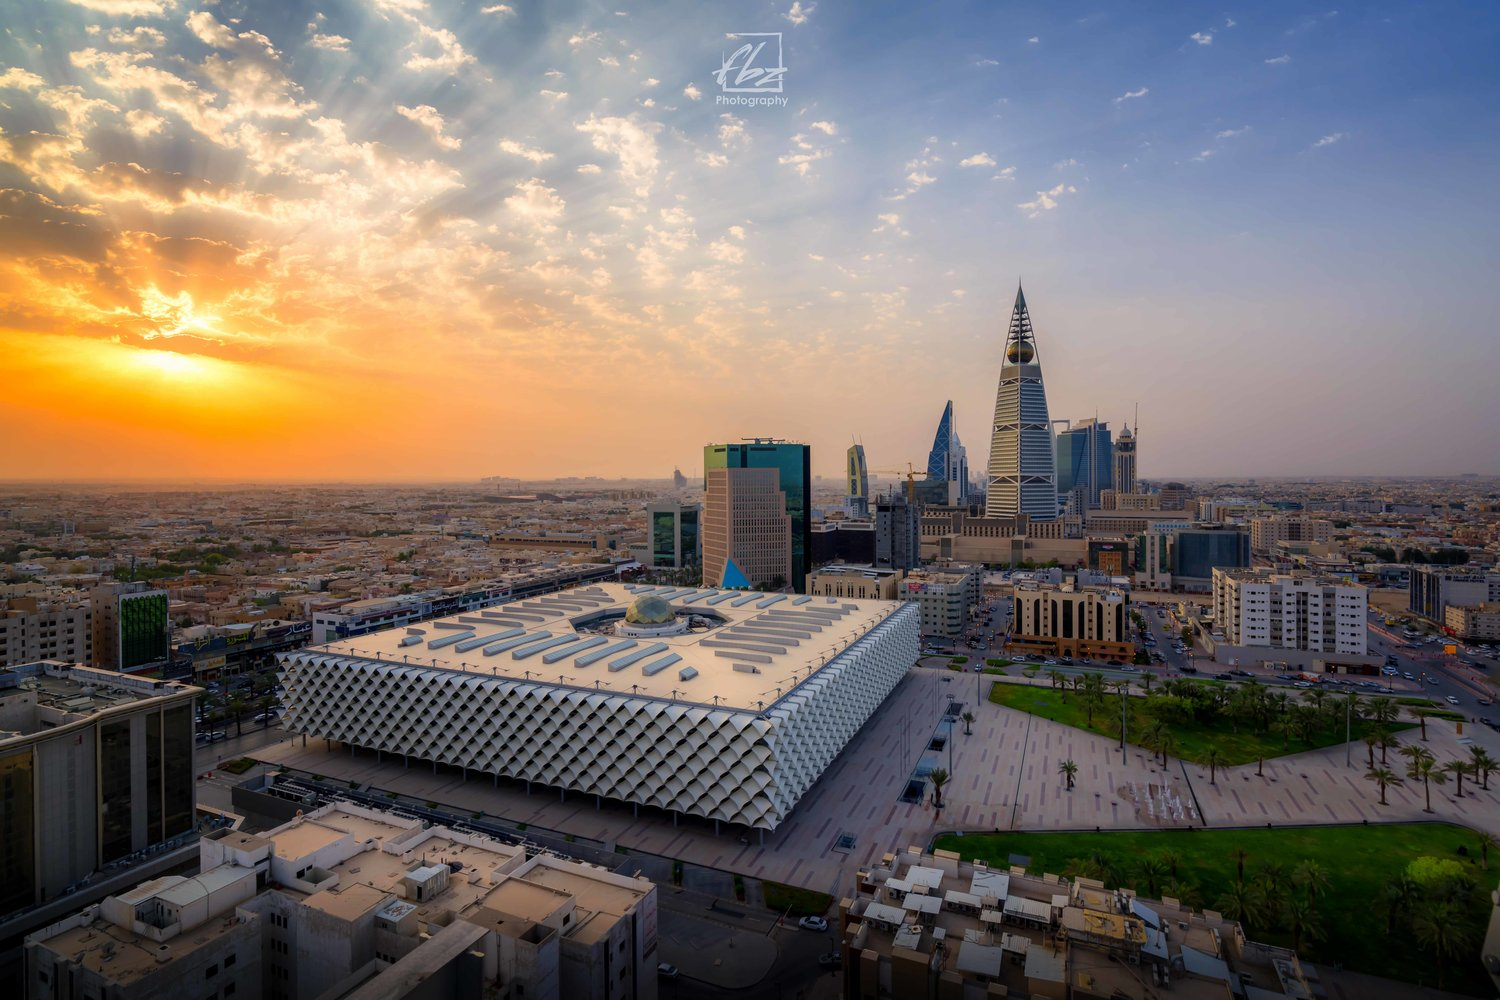 Al-Faisal skyscraper - Things to Do in Saudi Arabia